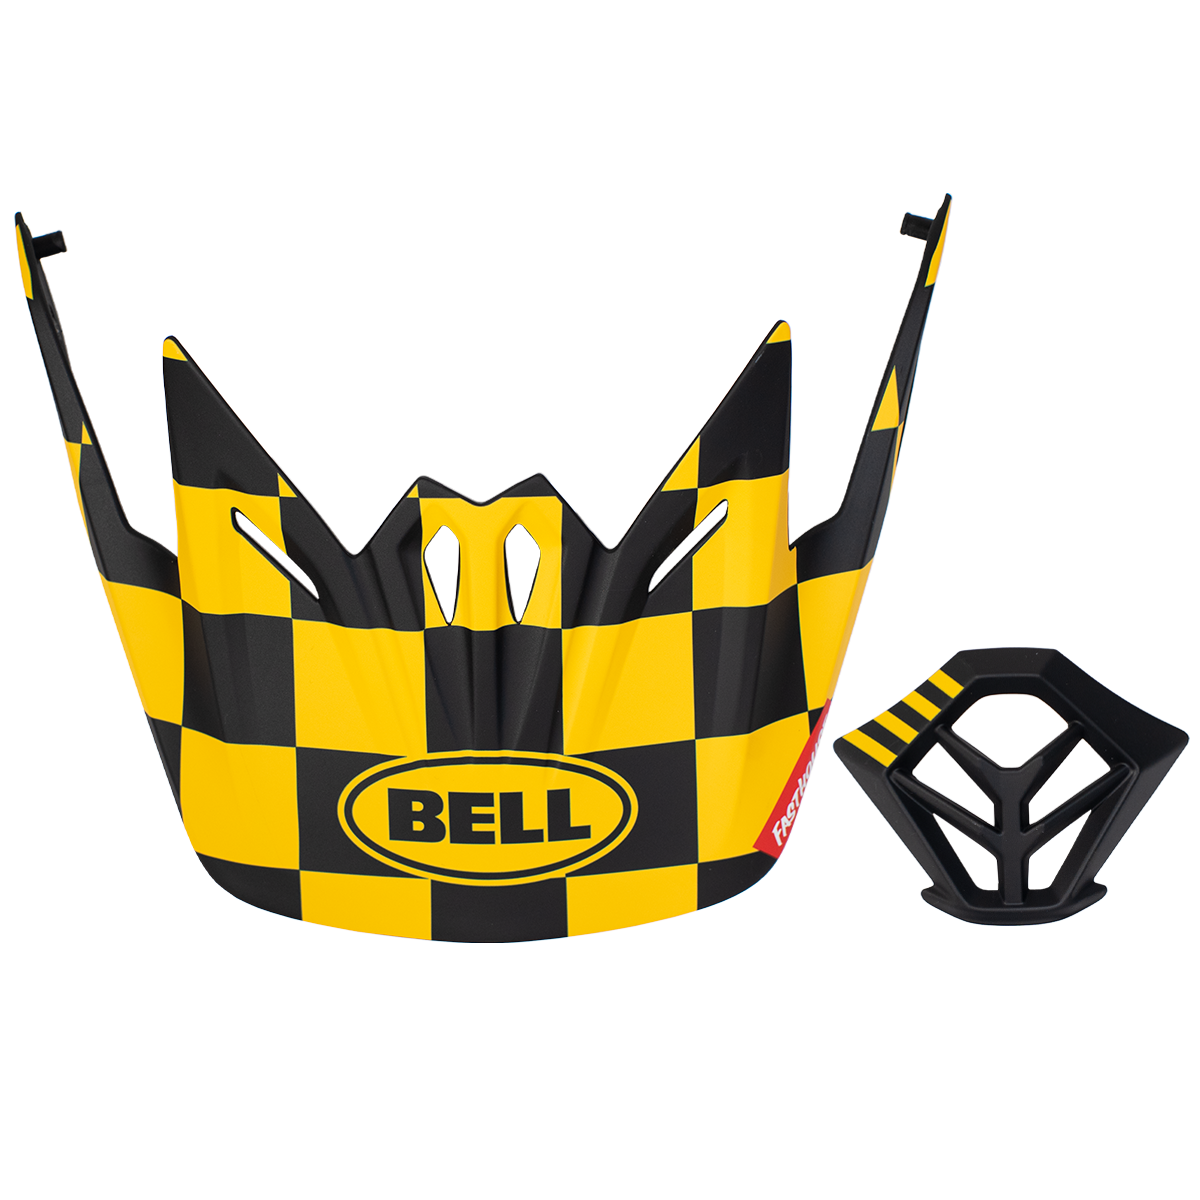 Bell Checkers MTB Visor + Mouthpiece Kit - Yellow/Black Checkers